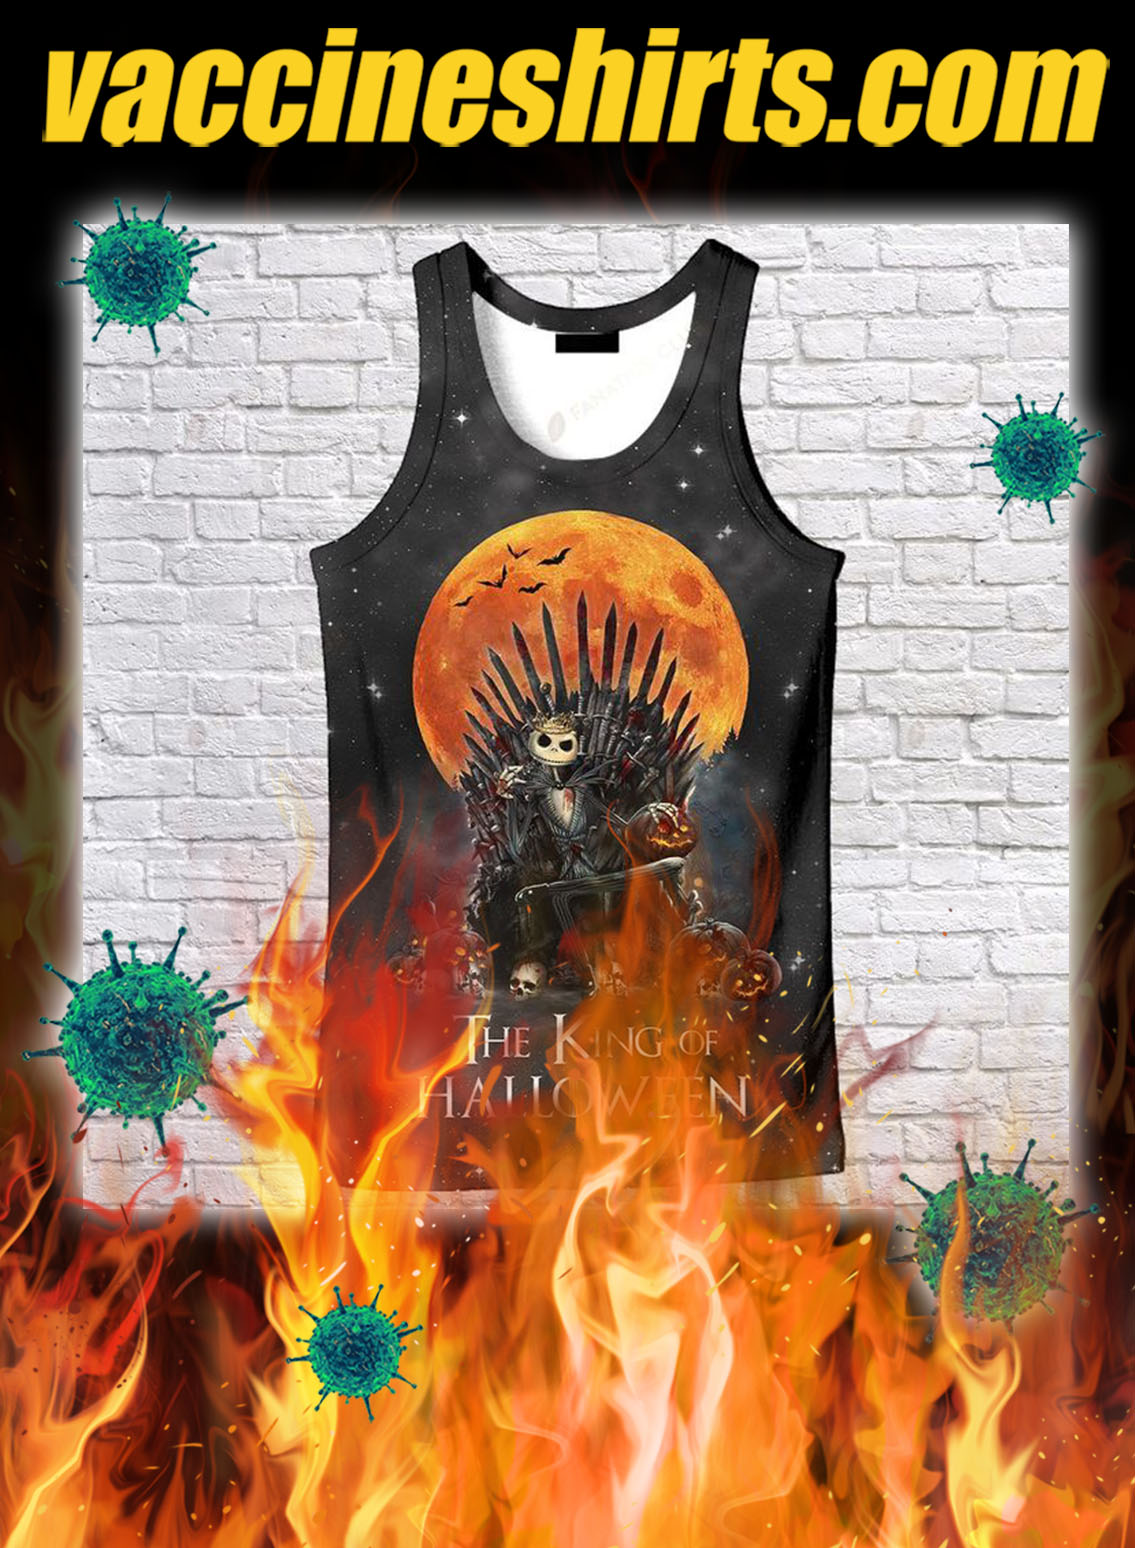 Jack skellington the king of halloween 3d all over print tank top